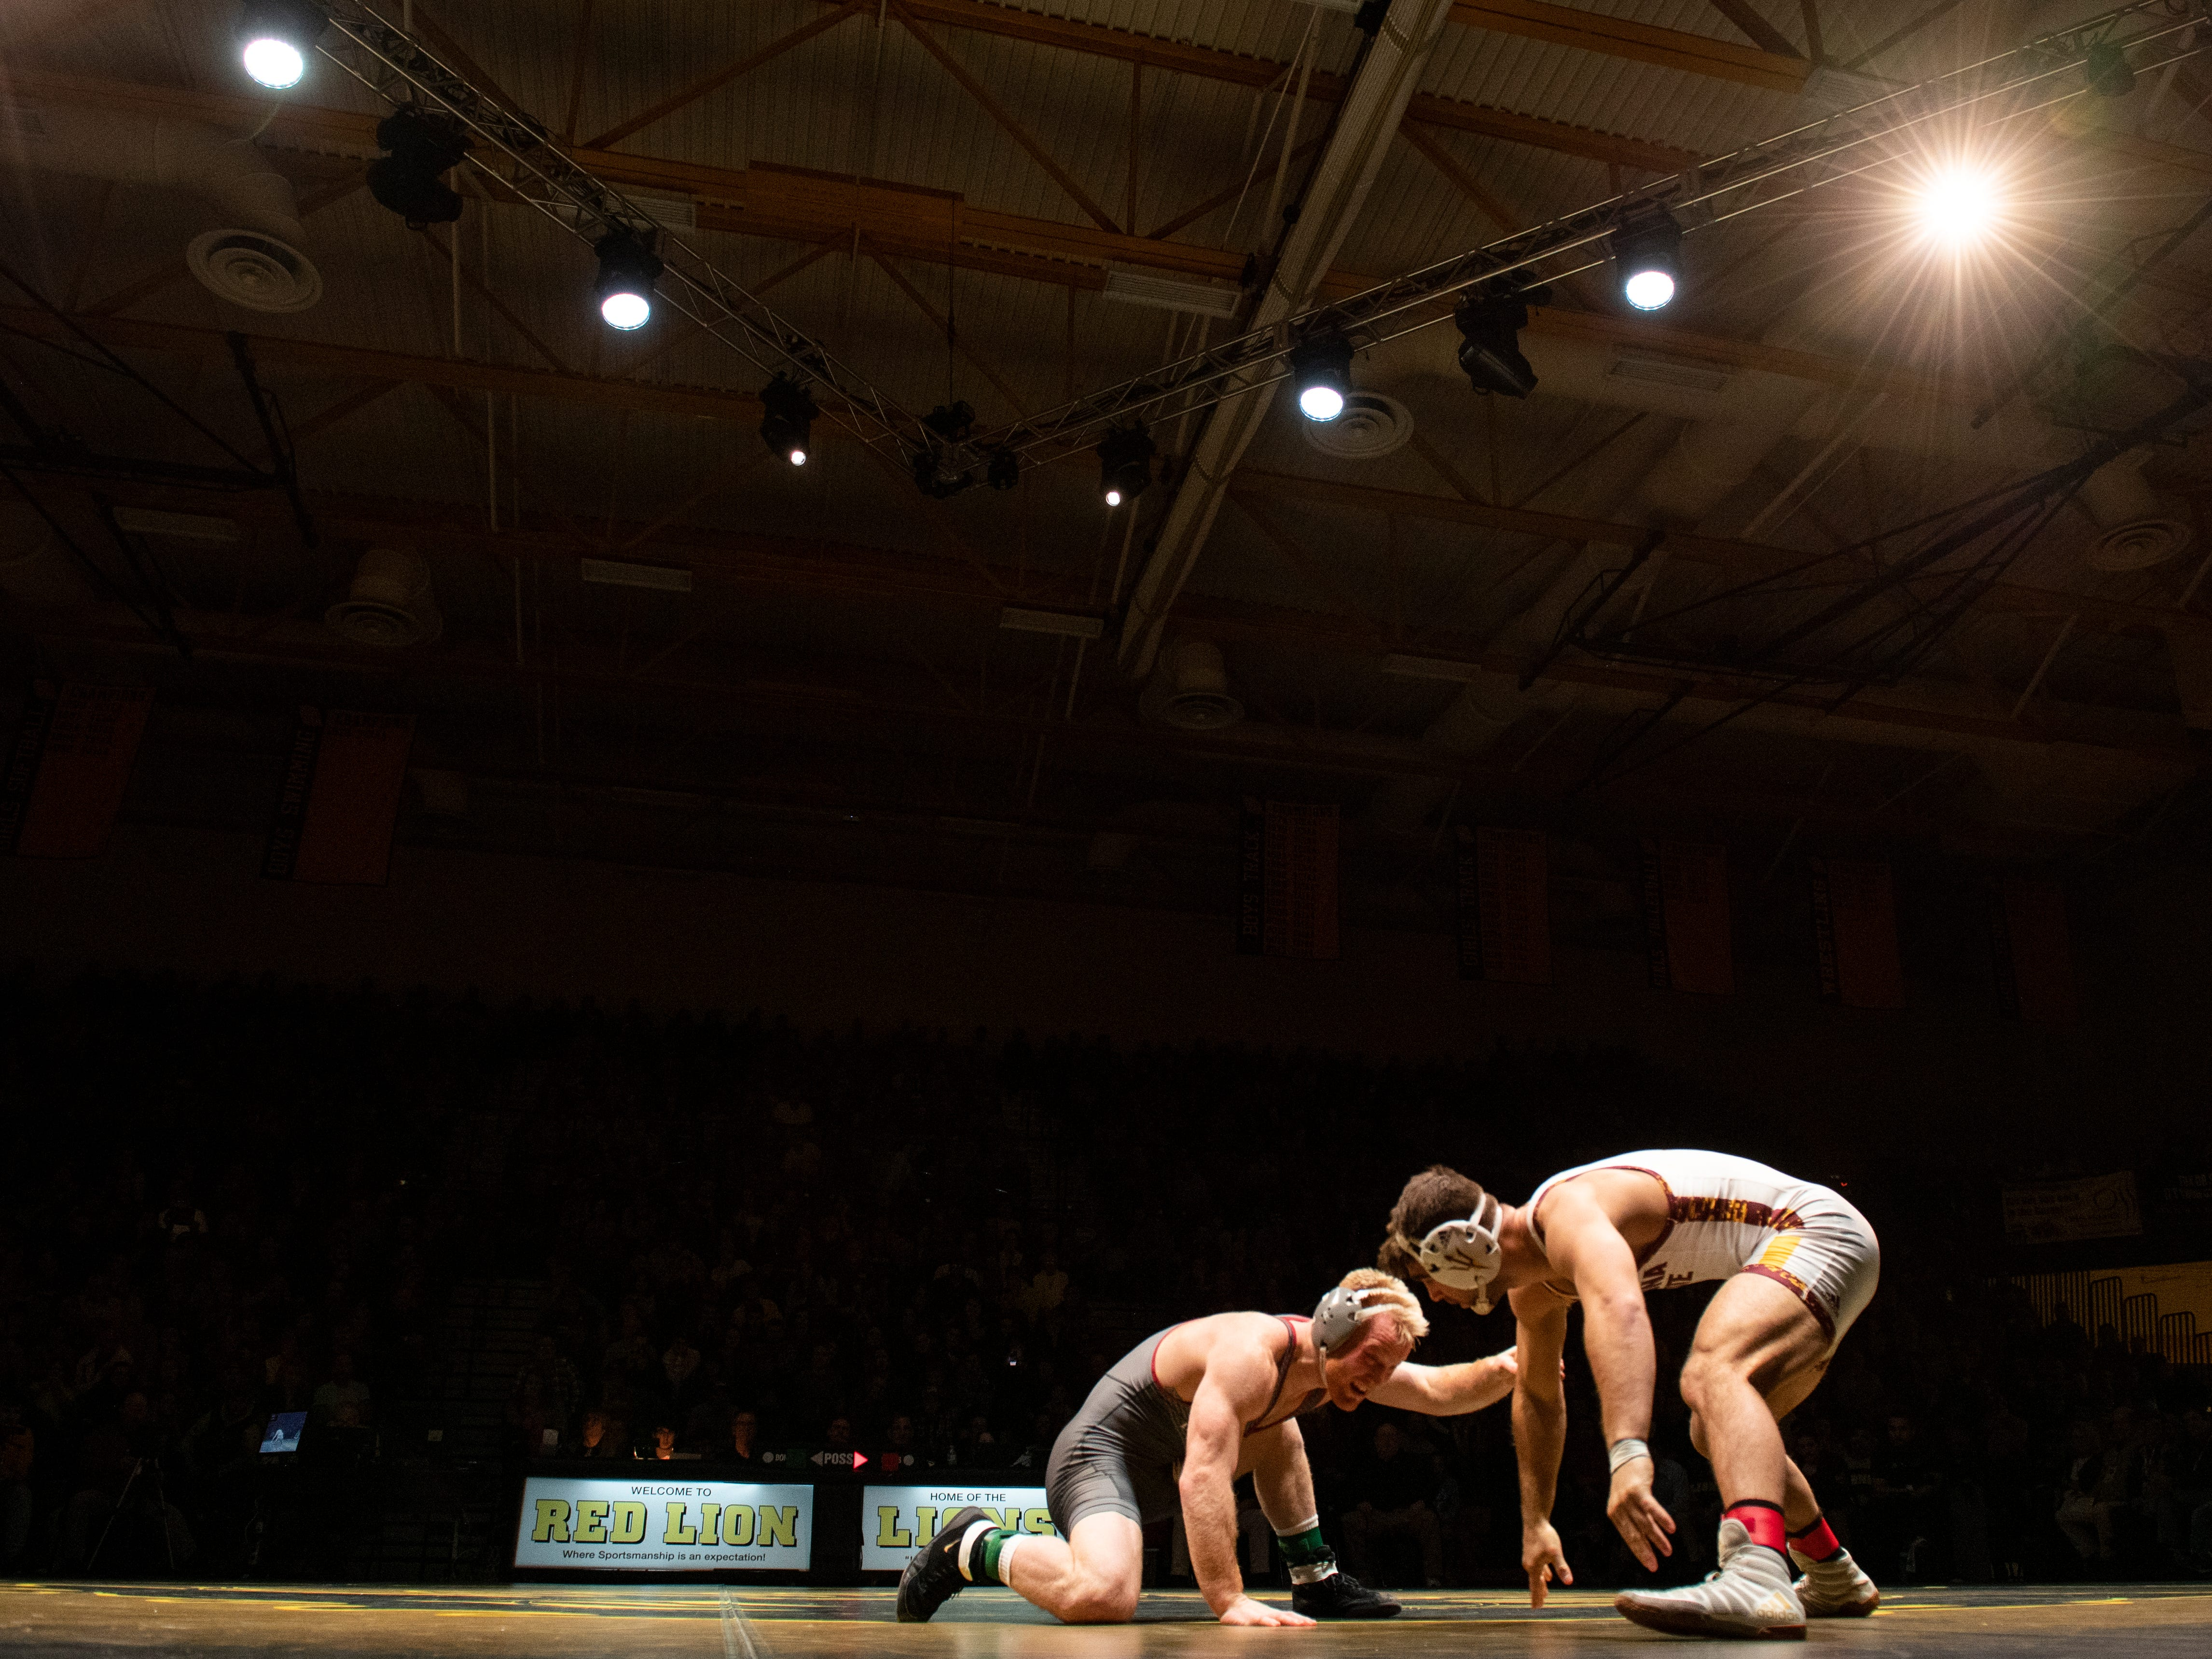 Lock Haven's Chance Marsteller, left, wrestles with Arizona State's Josh Shields during the 165-pound bout at Red Lion's Fitzkee Athletic Center on Friday, Jan. 25, 2019. Shields, nationally ranked at No. 5, beat Marsteller (No. 4), 2-1, in a tiebreaker. No. 22 Lock Haven upset No. 12 Arizona State, 23-14, in the first ever 'Rumble in the Jungle.'